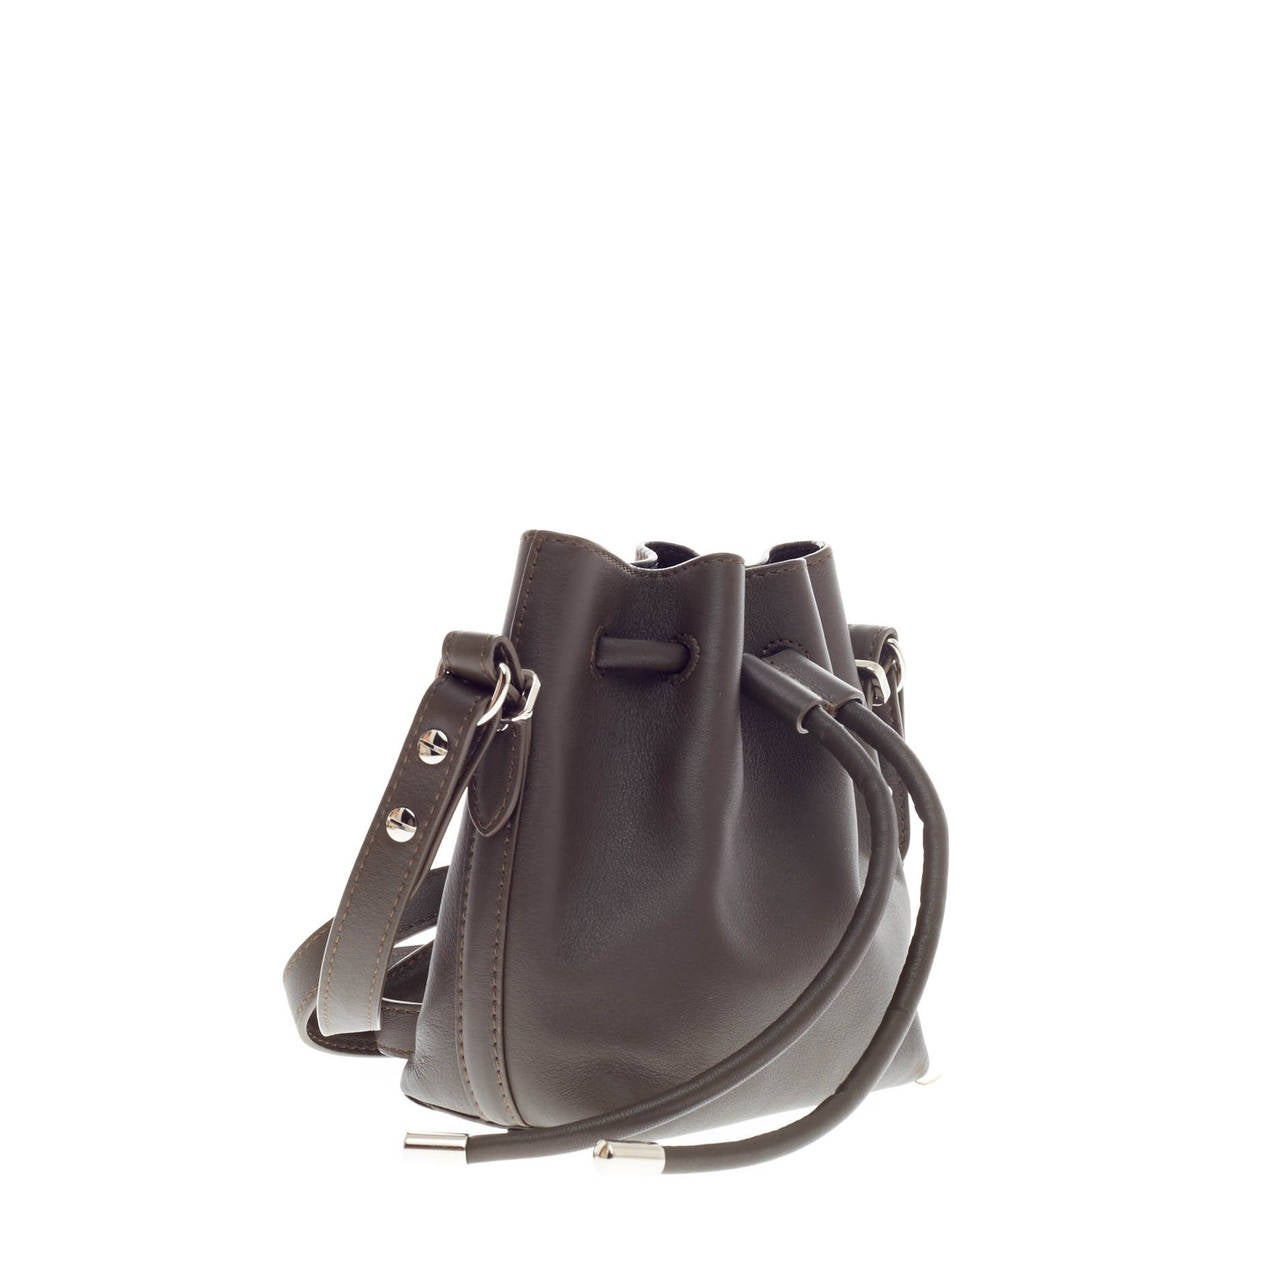 Proenza Schouler Bucket Bag Leather Tiny In Good Condition For Sale In New York, NY